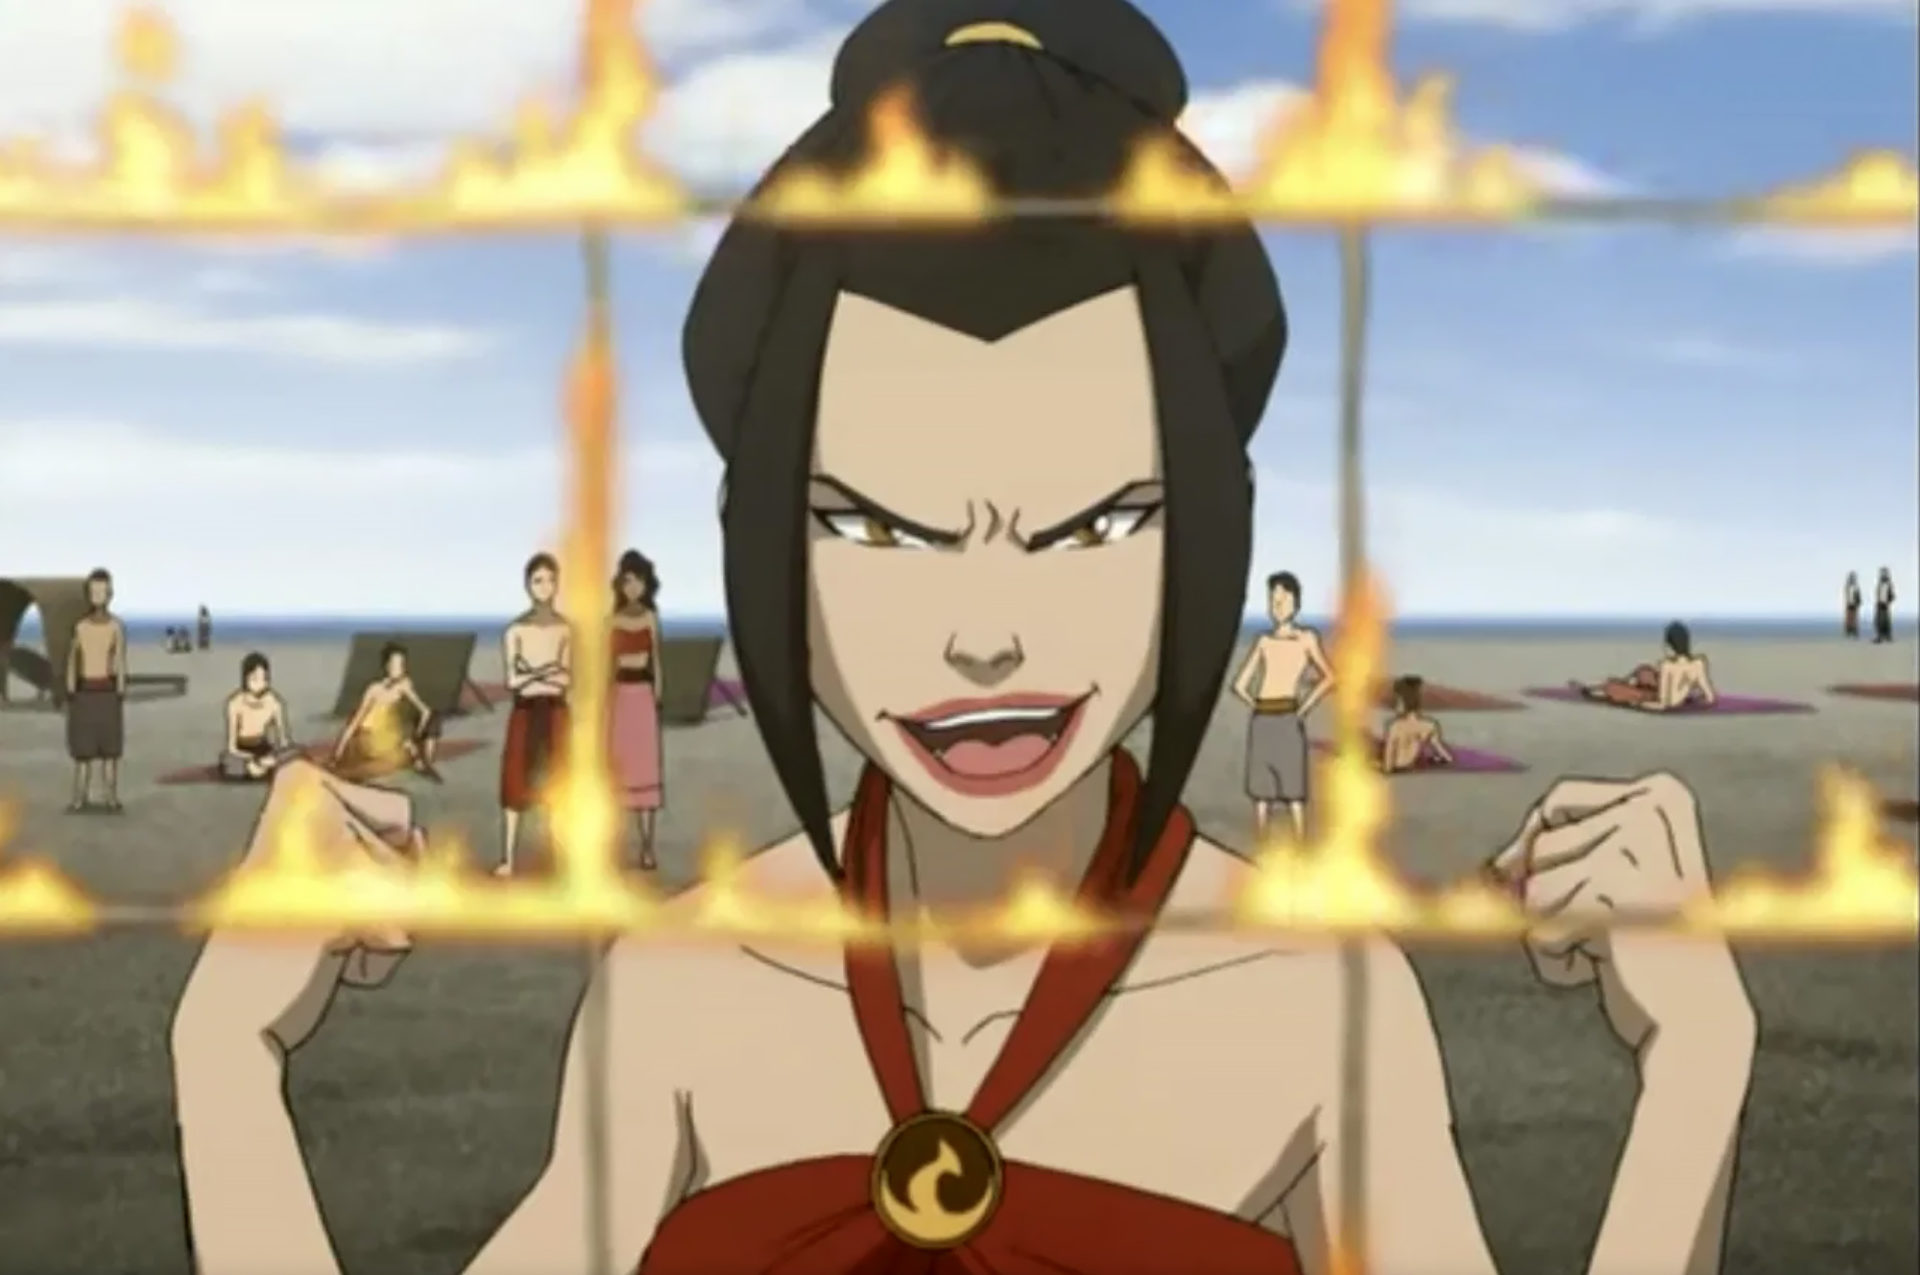 Screenshot of Avatar: The Last Airbender villain Azula burning volleyball net in Season 3.